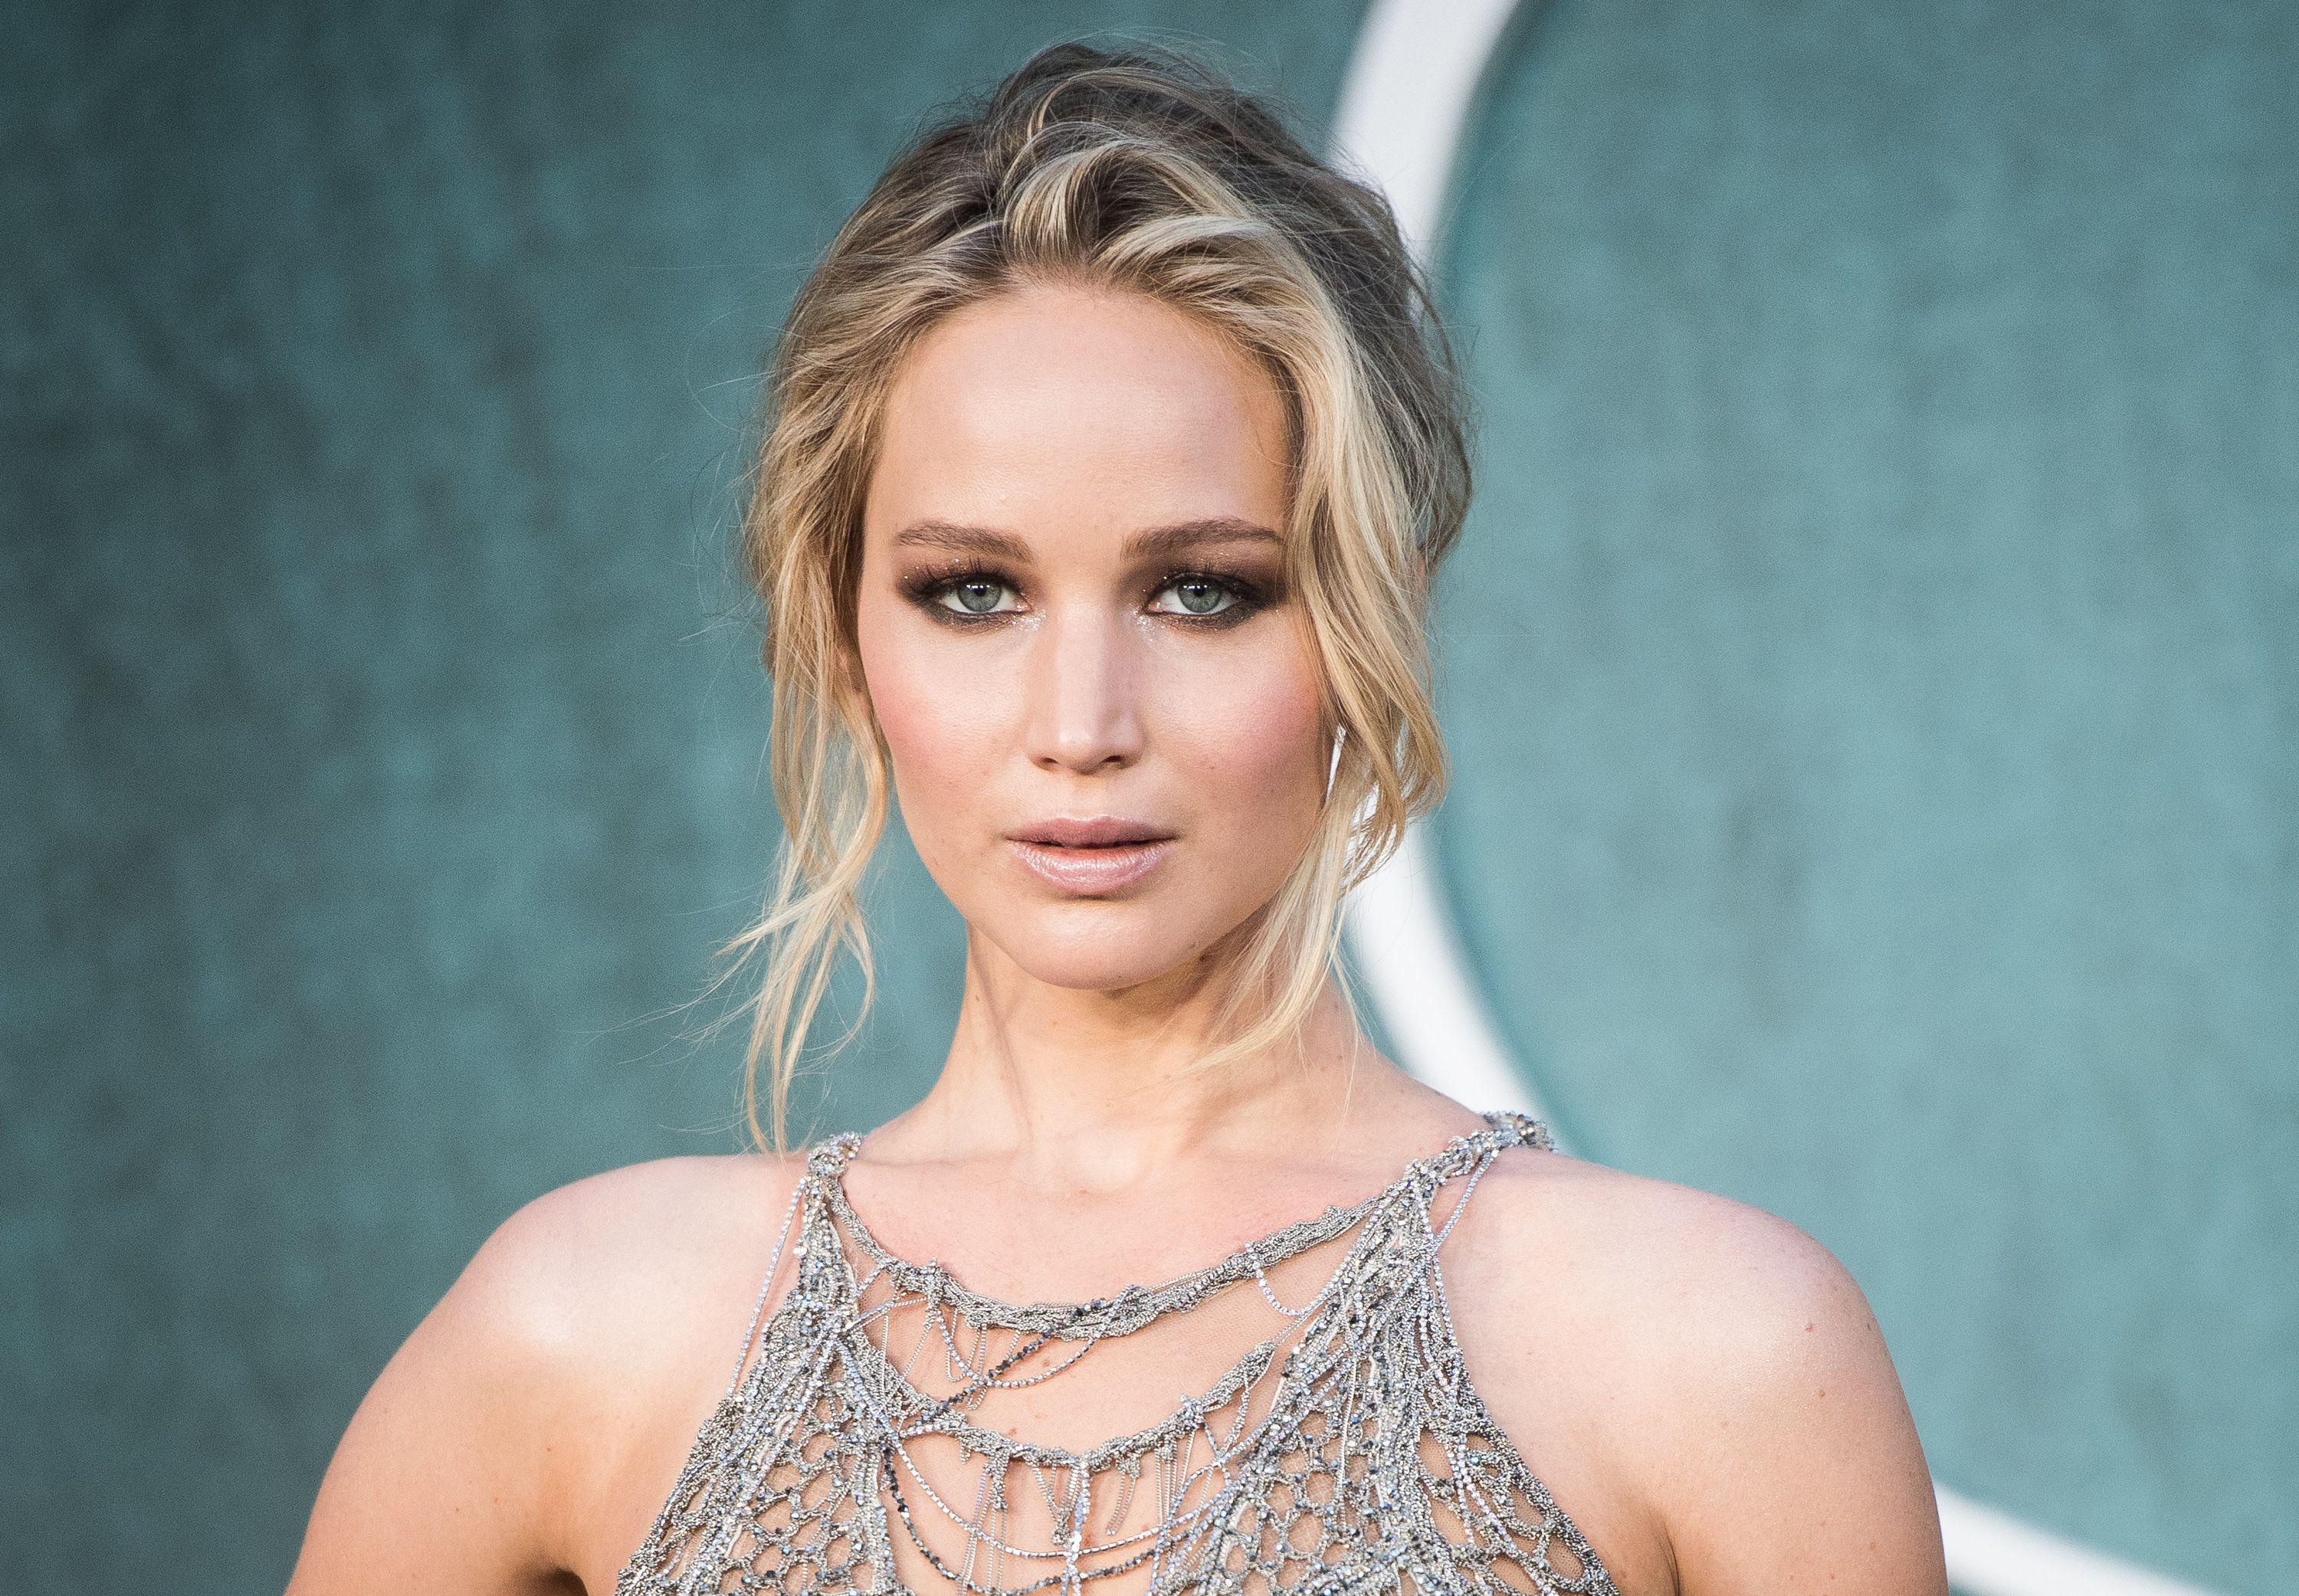 LONDON, ENGLAND - SEPTEMBER 06:  Jennifer Lawrence  attends the 'Mother!' UK premiere at Odeon Leicester Square on September 6, 2017 in London, England.  (Photo by Samir Hussein/Samir Hussein/WireImage)